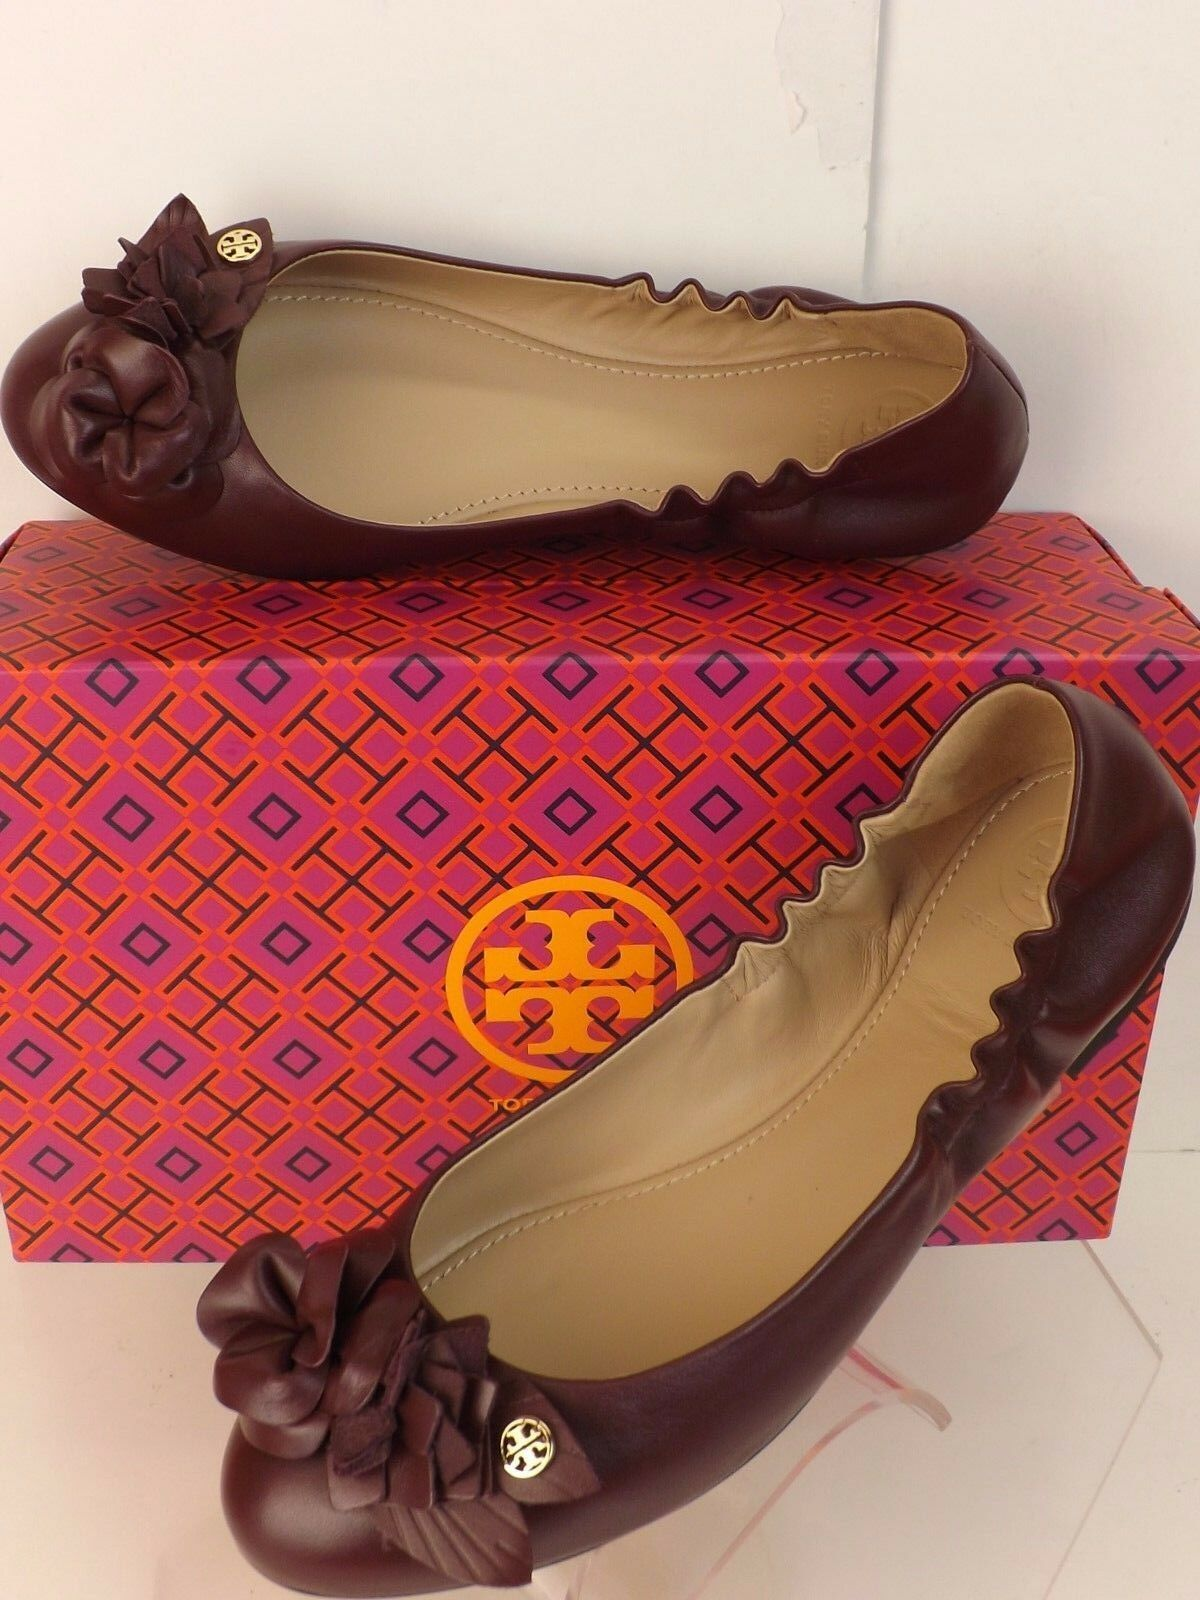 NIB TORY BURCH BLOSSOM PORT WINE FLOWERS LEATHER GOLD GOLD LEATHER REVA BALLET FLATS 9 6858ba